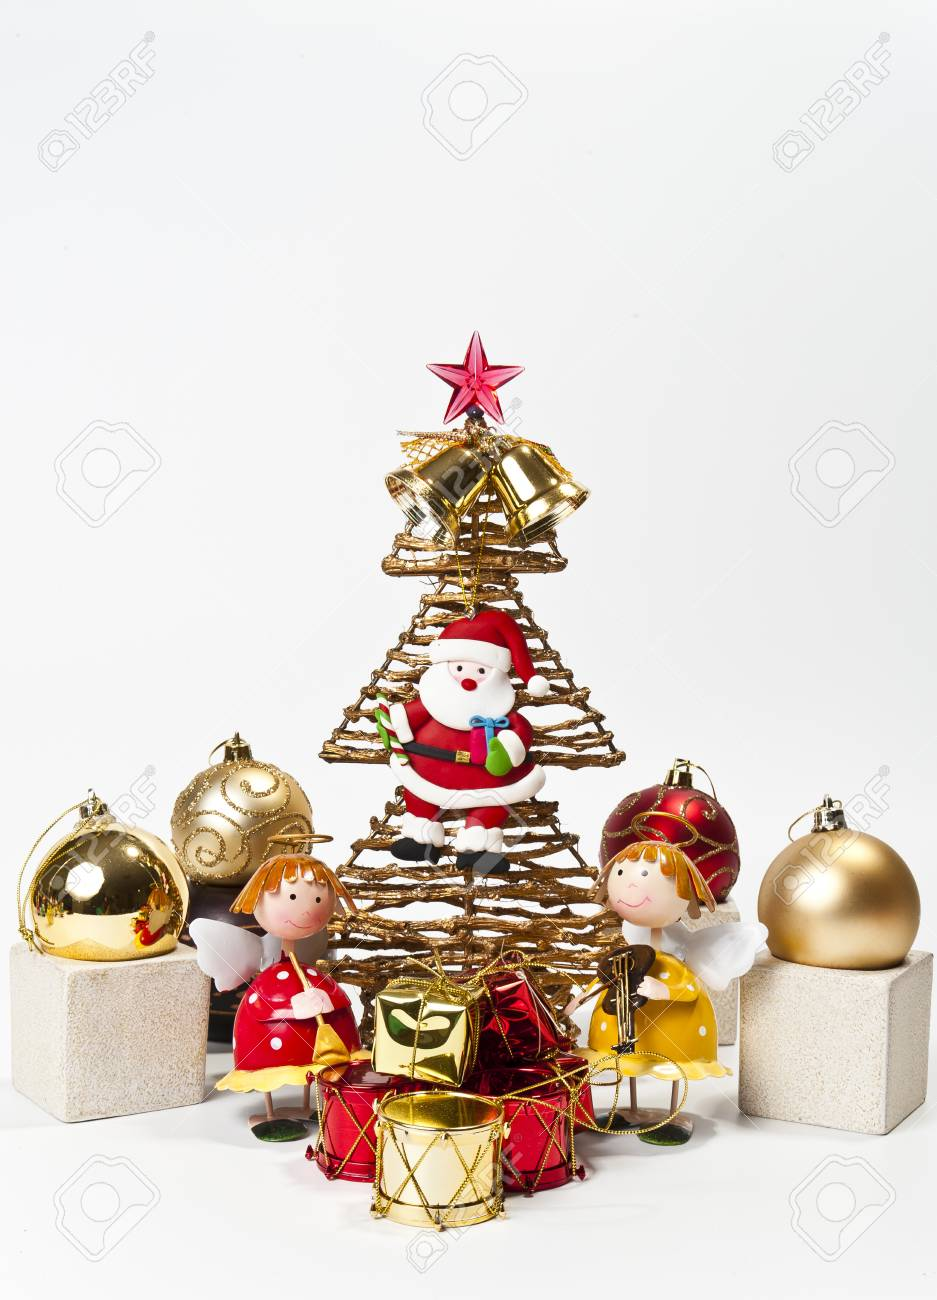 Two Angels wiht Christmas tree Stock Photo - 8387485